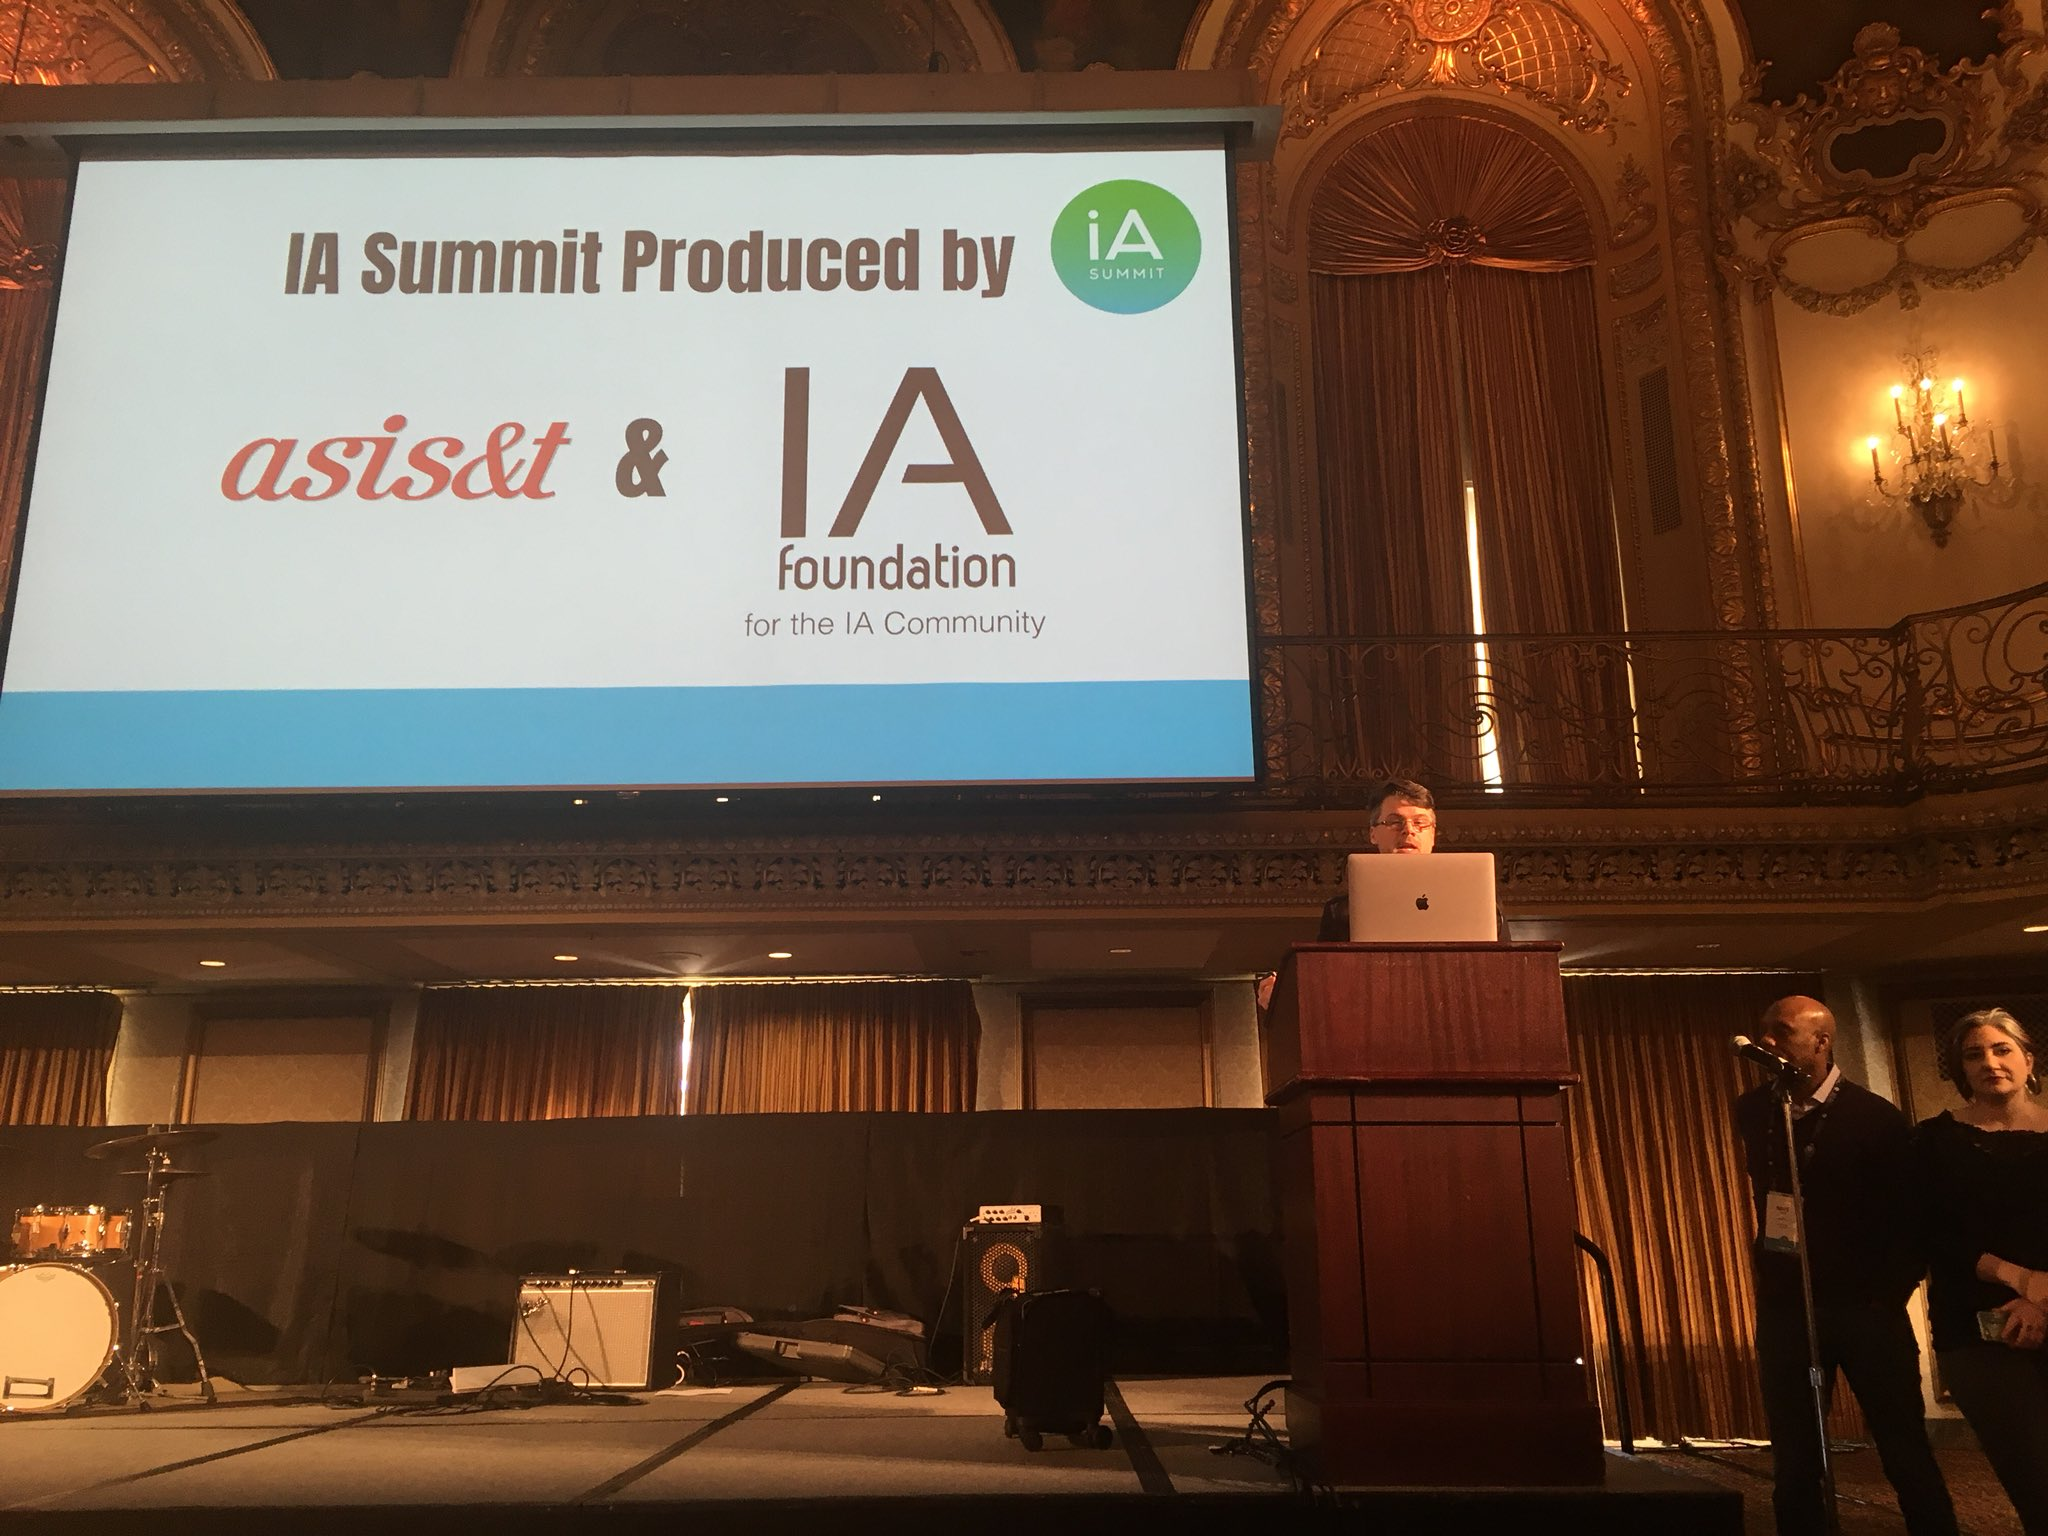 IA Summit co-chair on stage opening the conference.